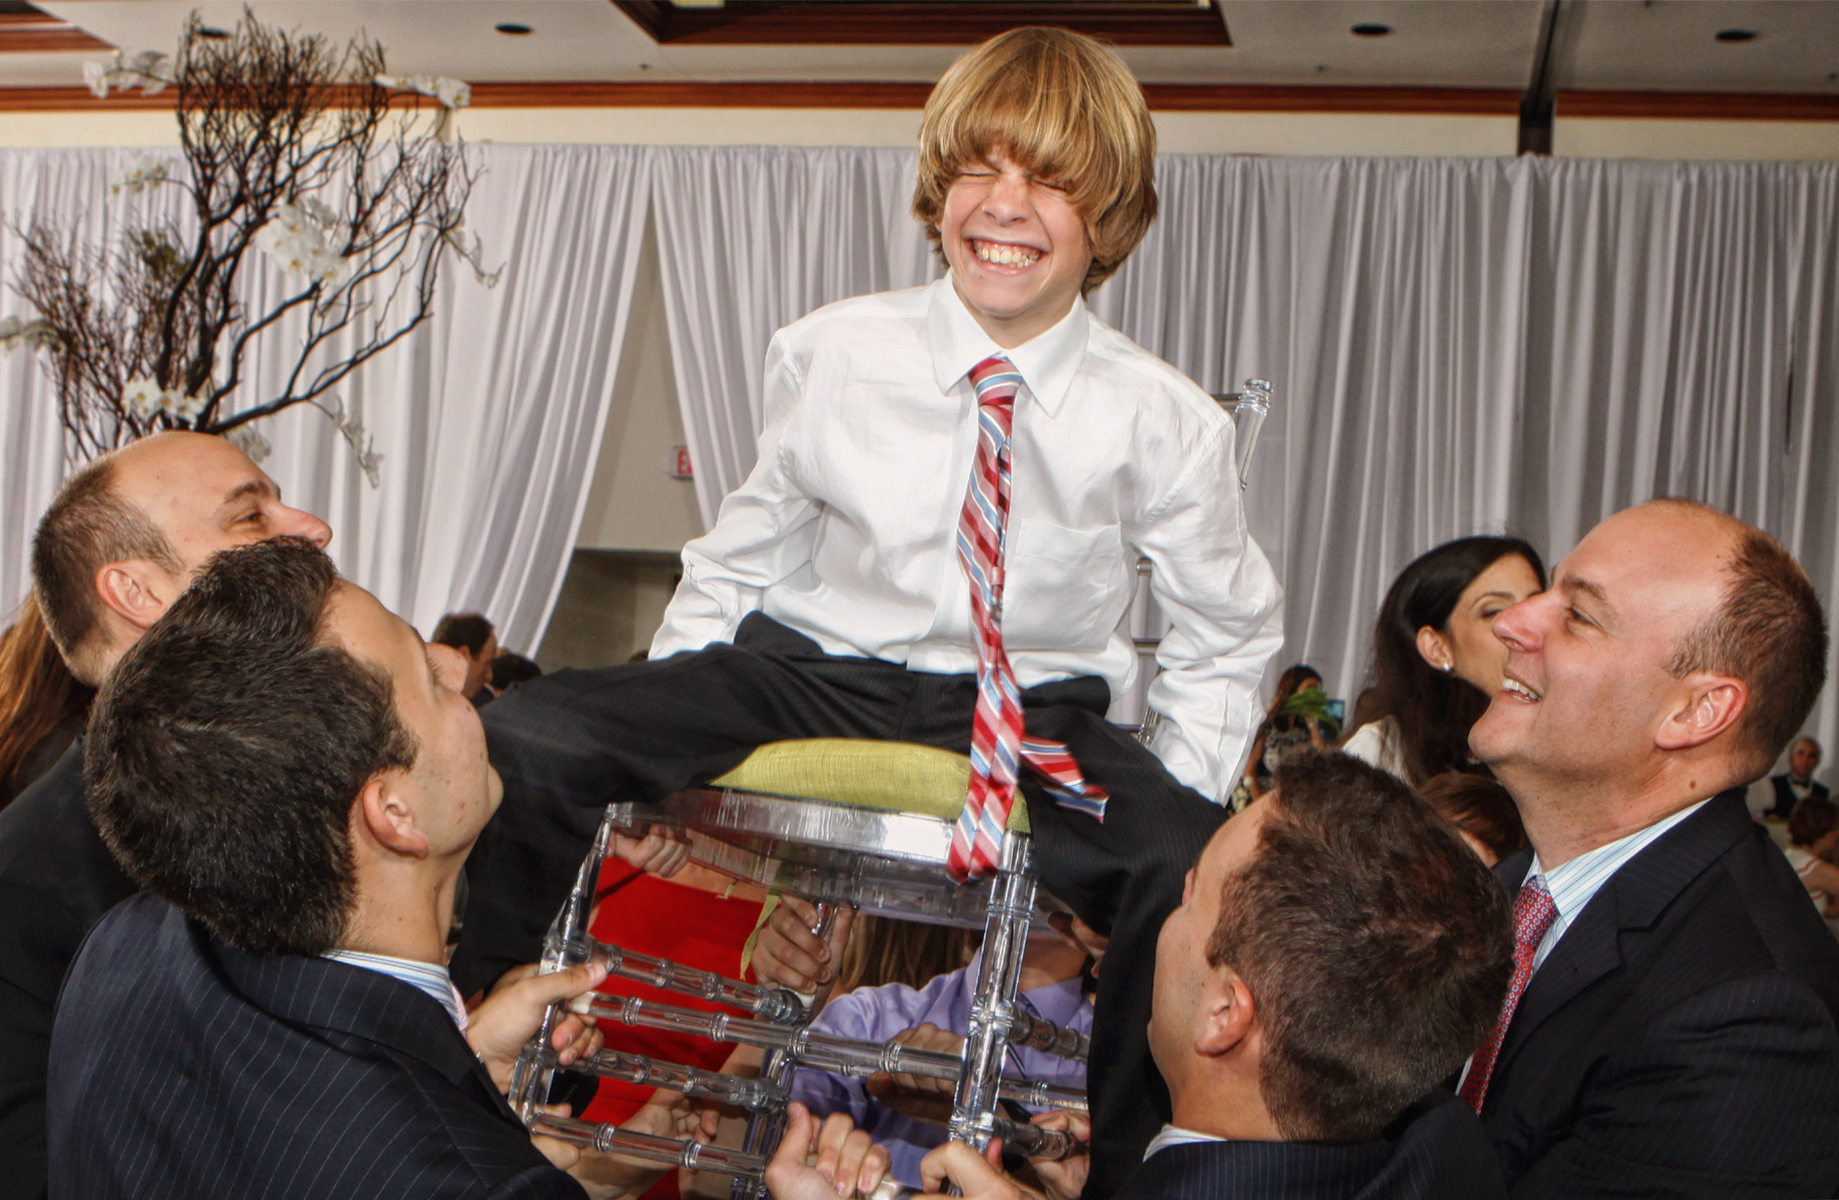 Parties, Receptions and Special Moments - $175 Hour